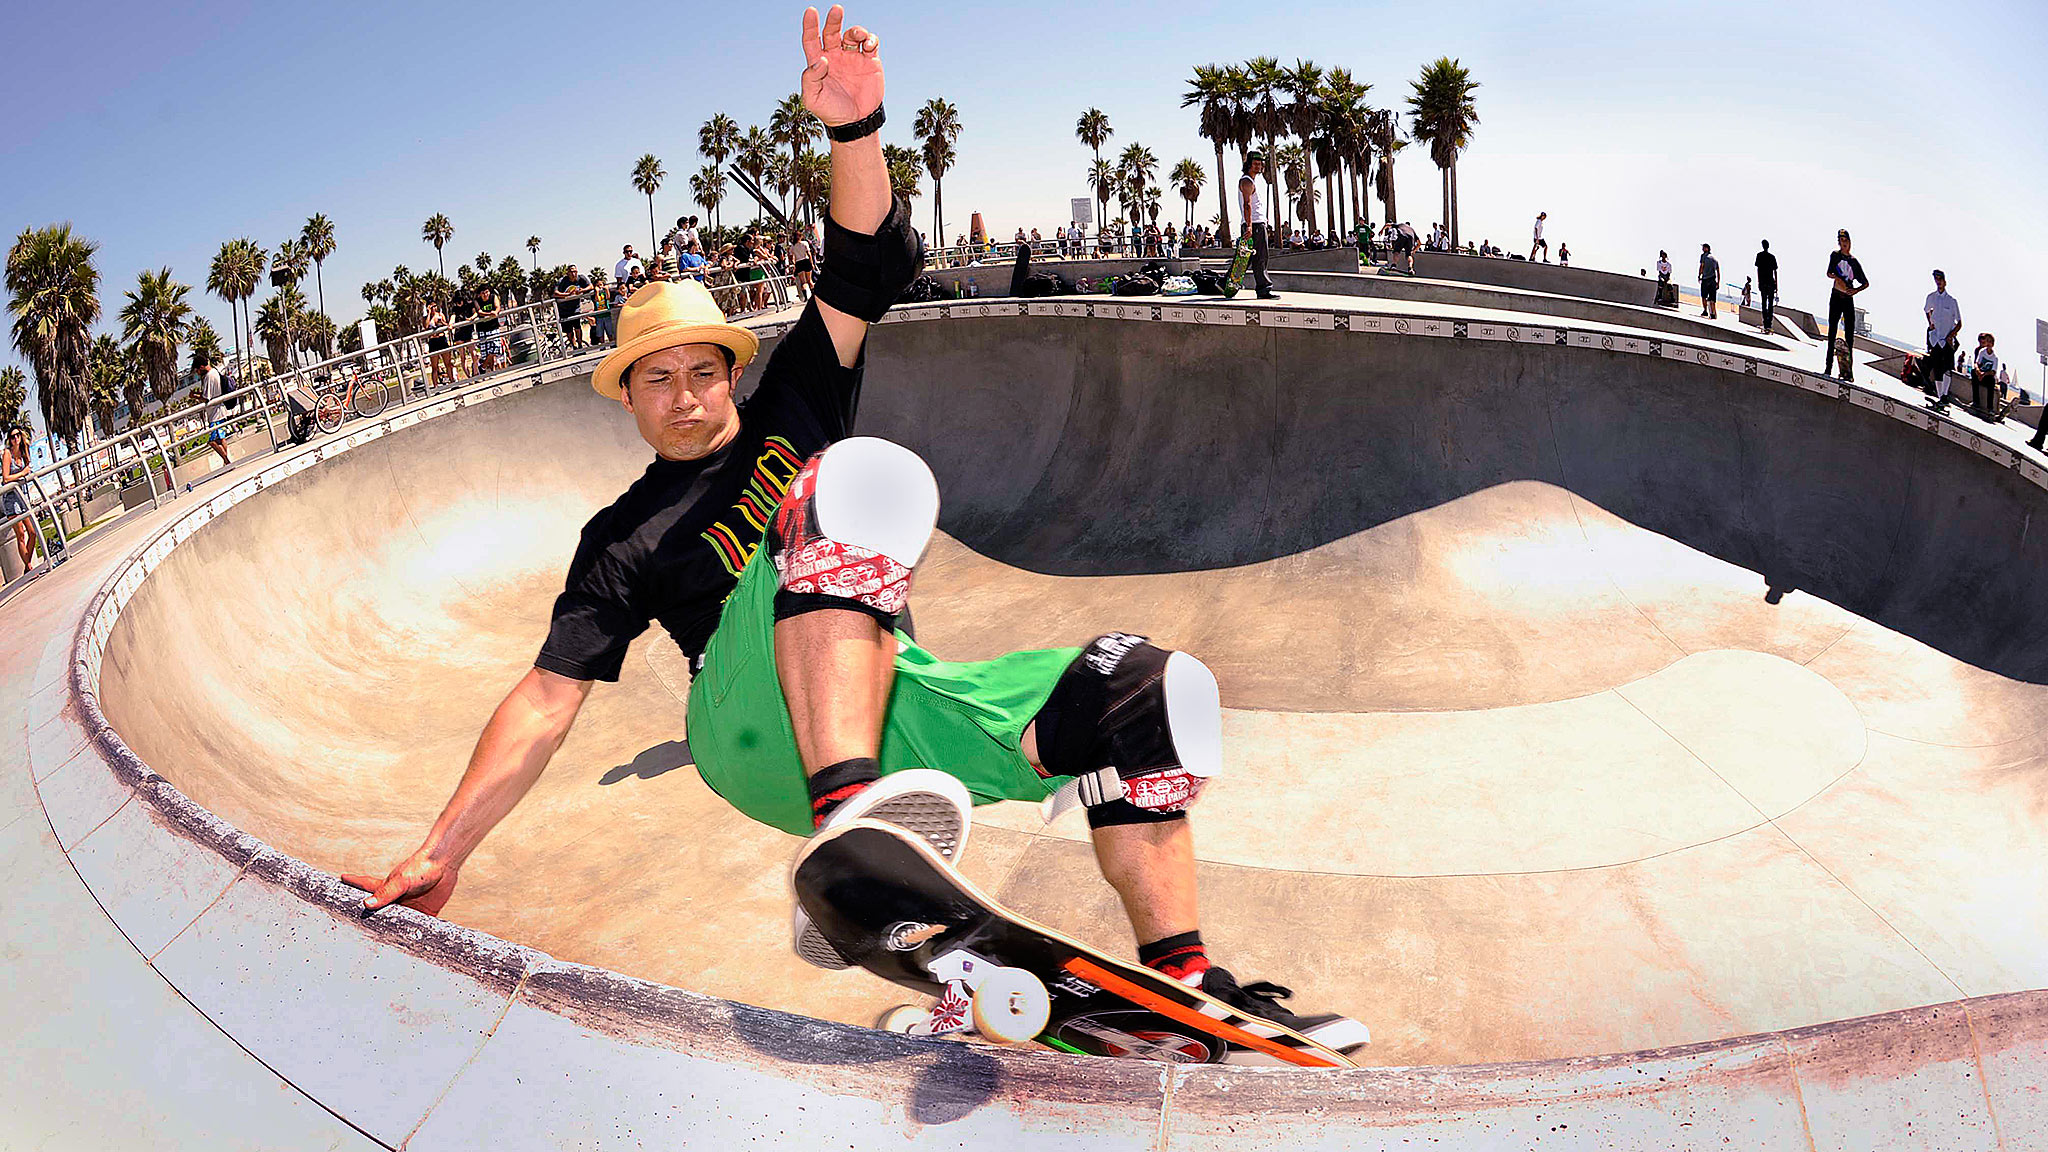 skateboarding wallpapers high quality download free